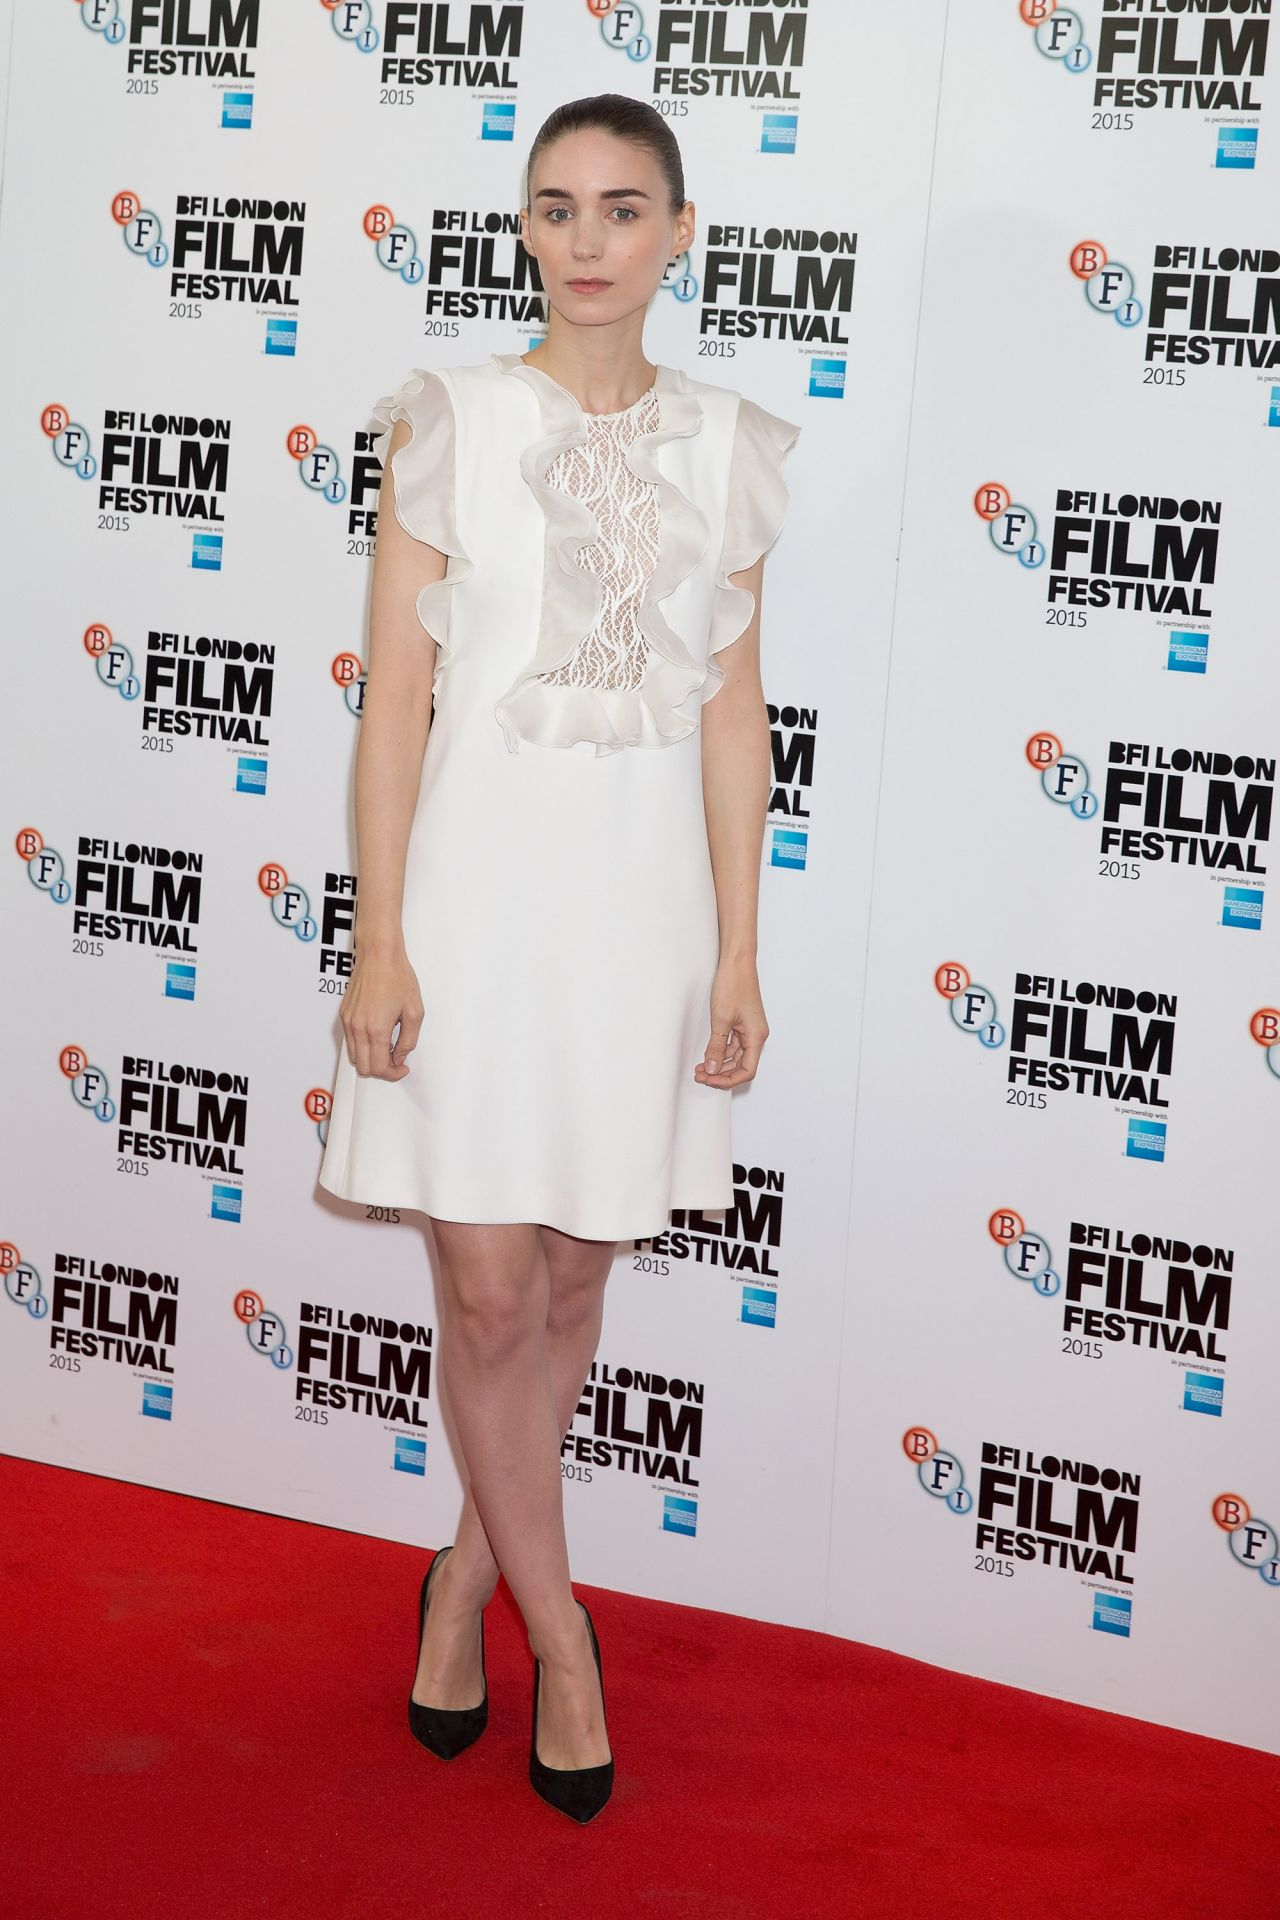 rooney-mara-carol-photocall-bfi-london-film-festival_8